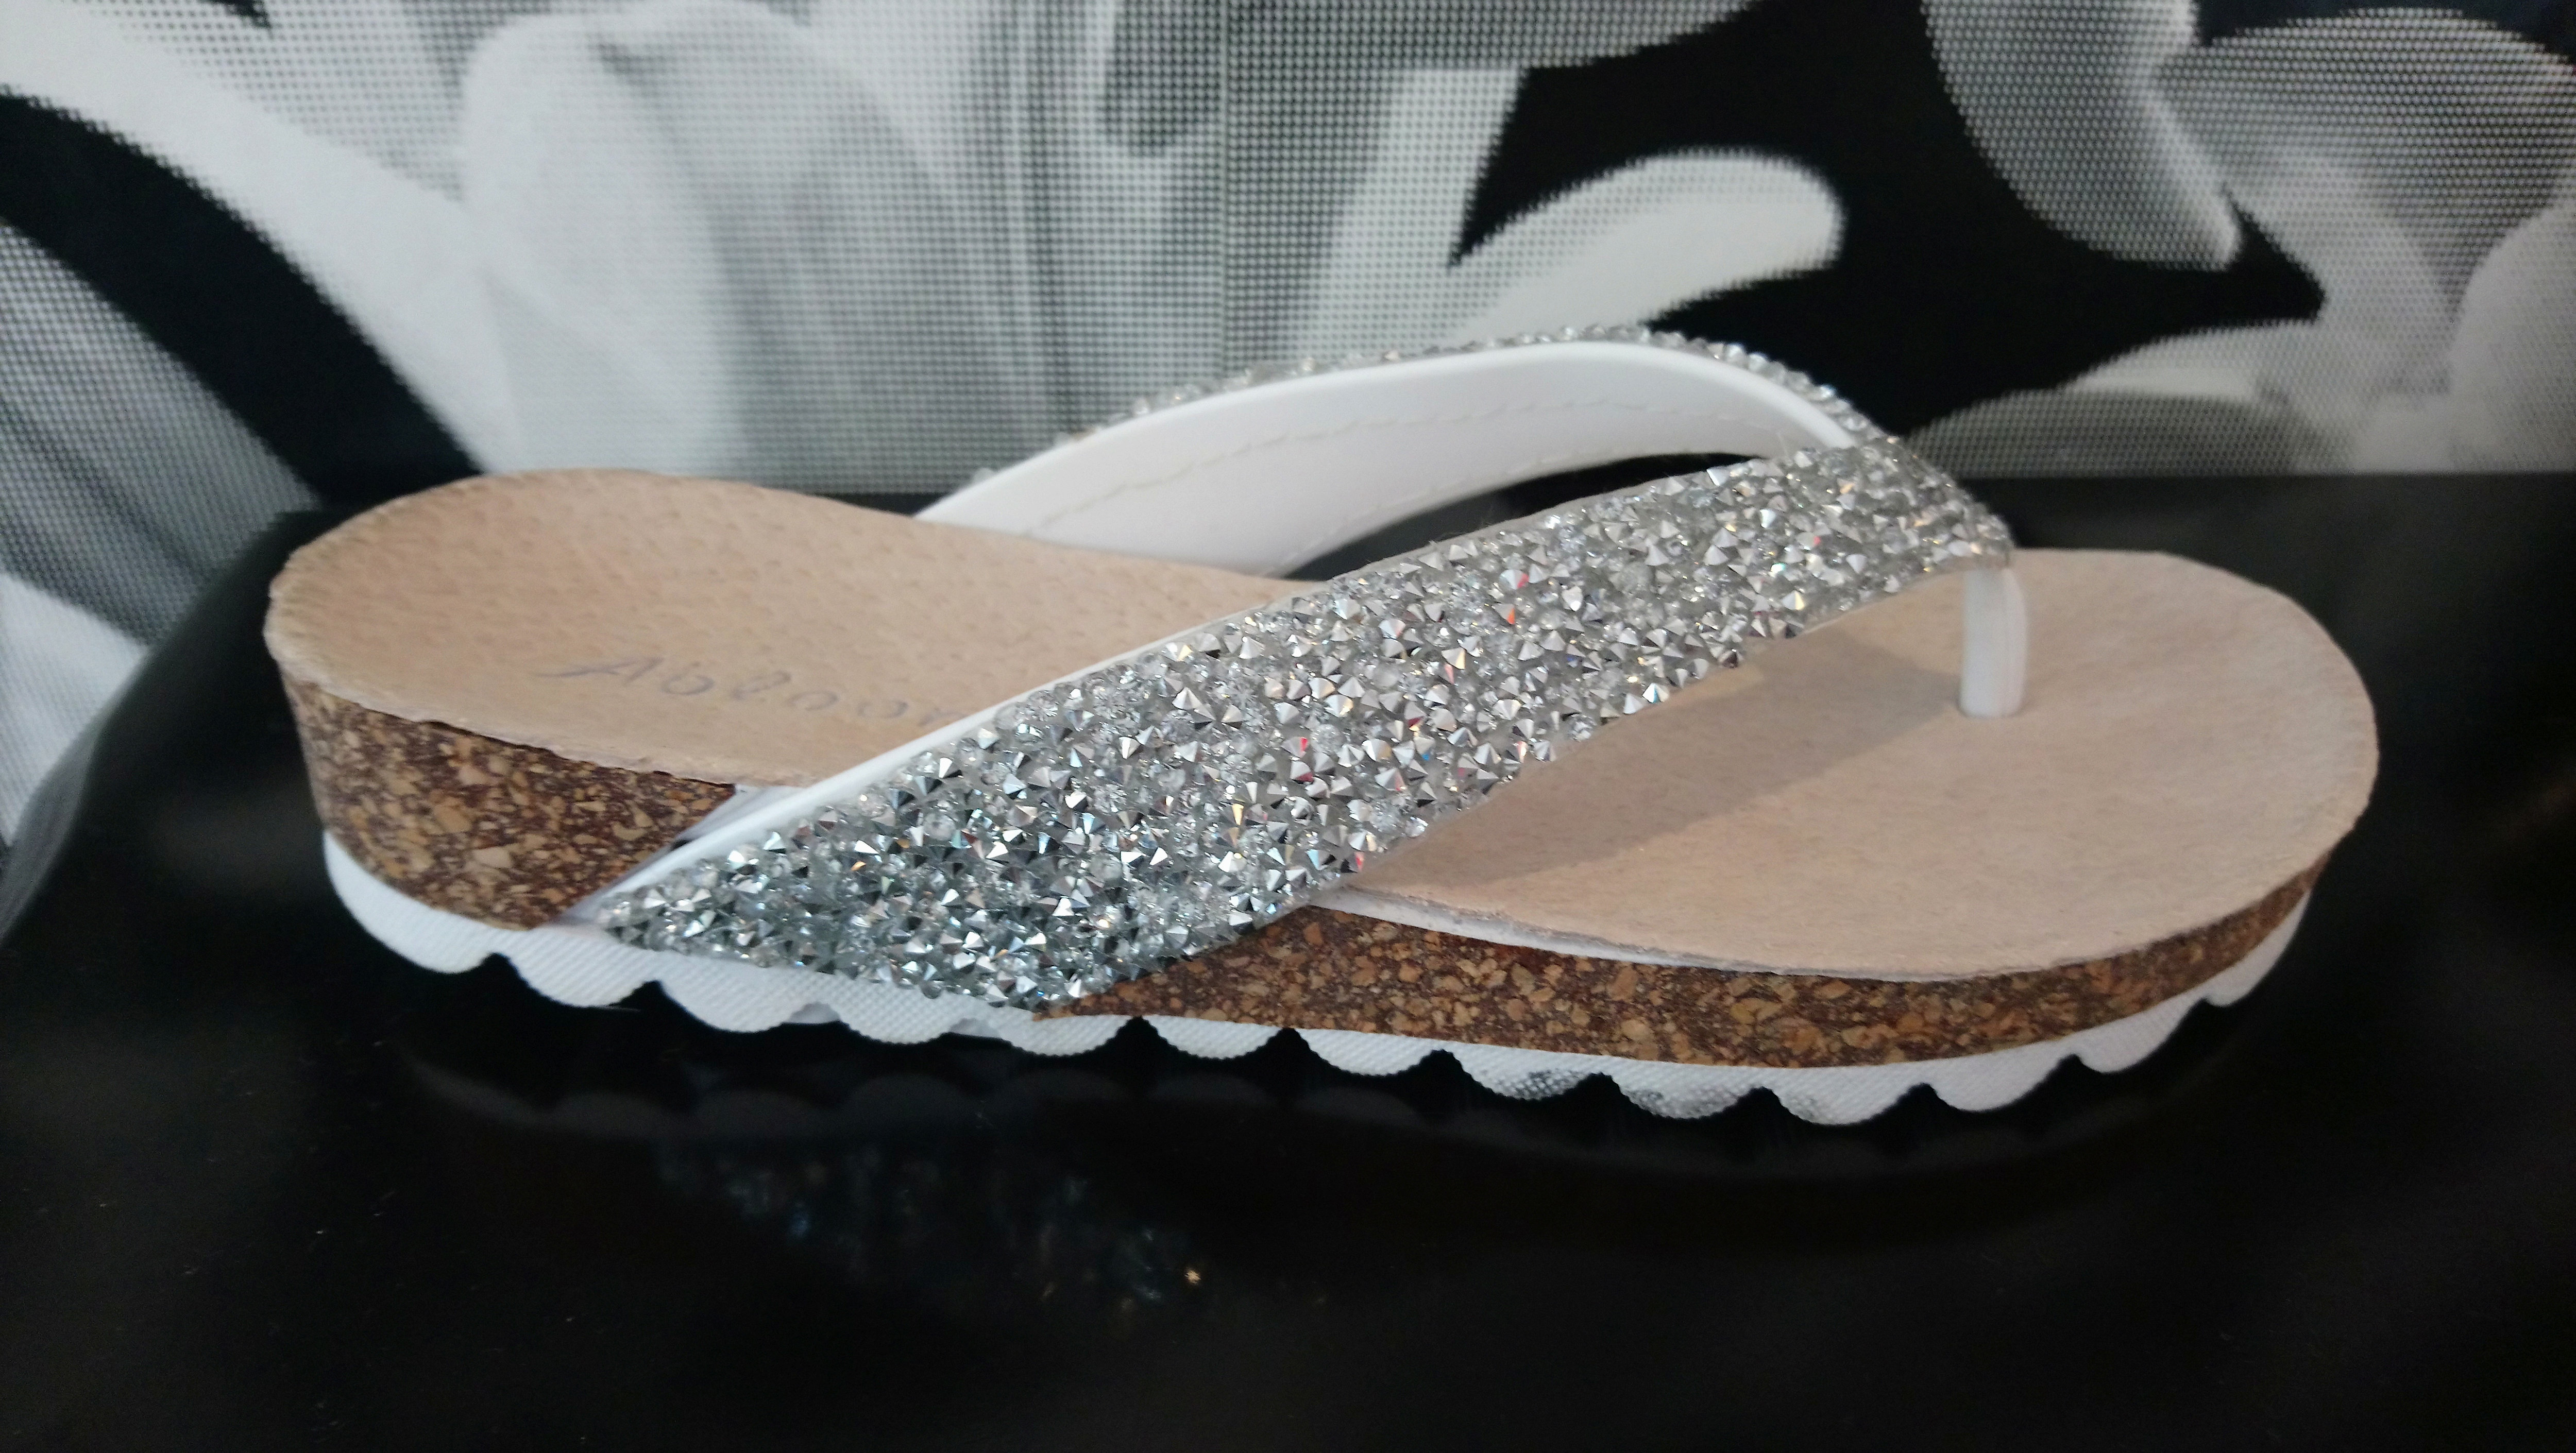 52b1821af979 Sliver sparkle flip flops with chunky glitter and super comfy raised sole. These  really are the most comfy flip flops ever!